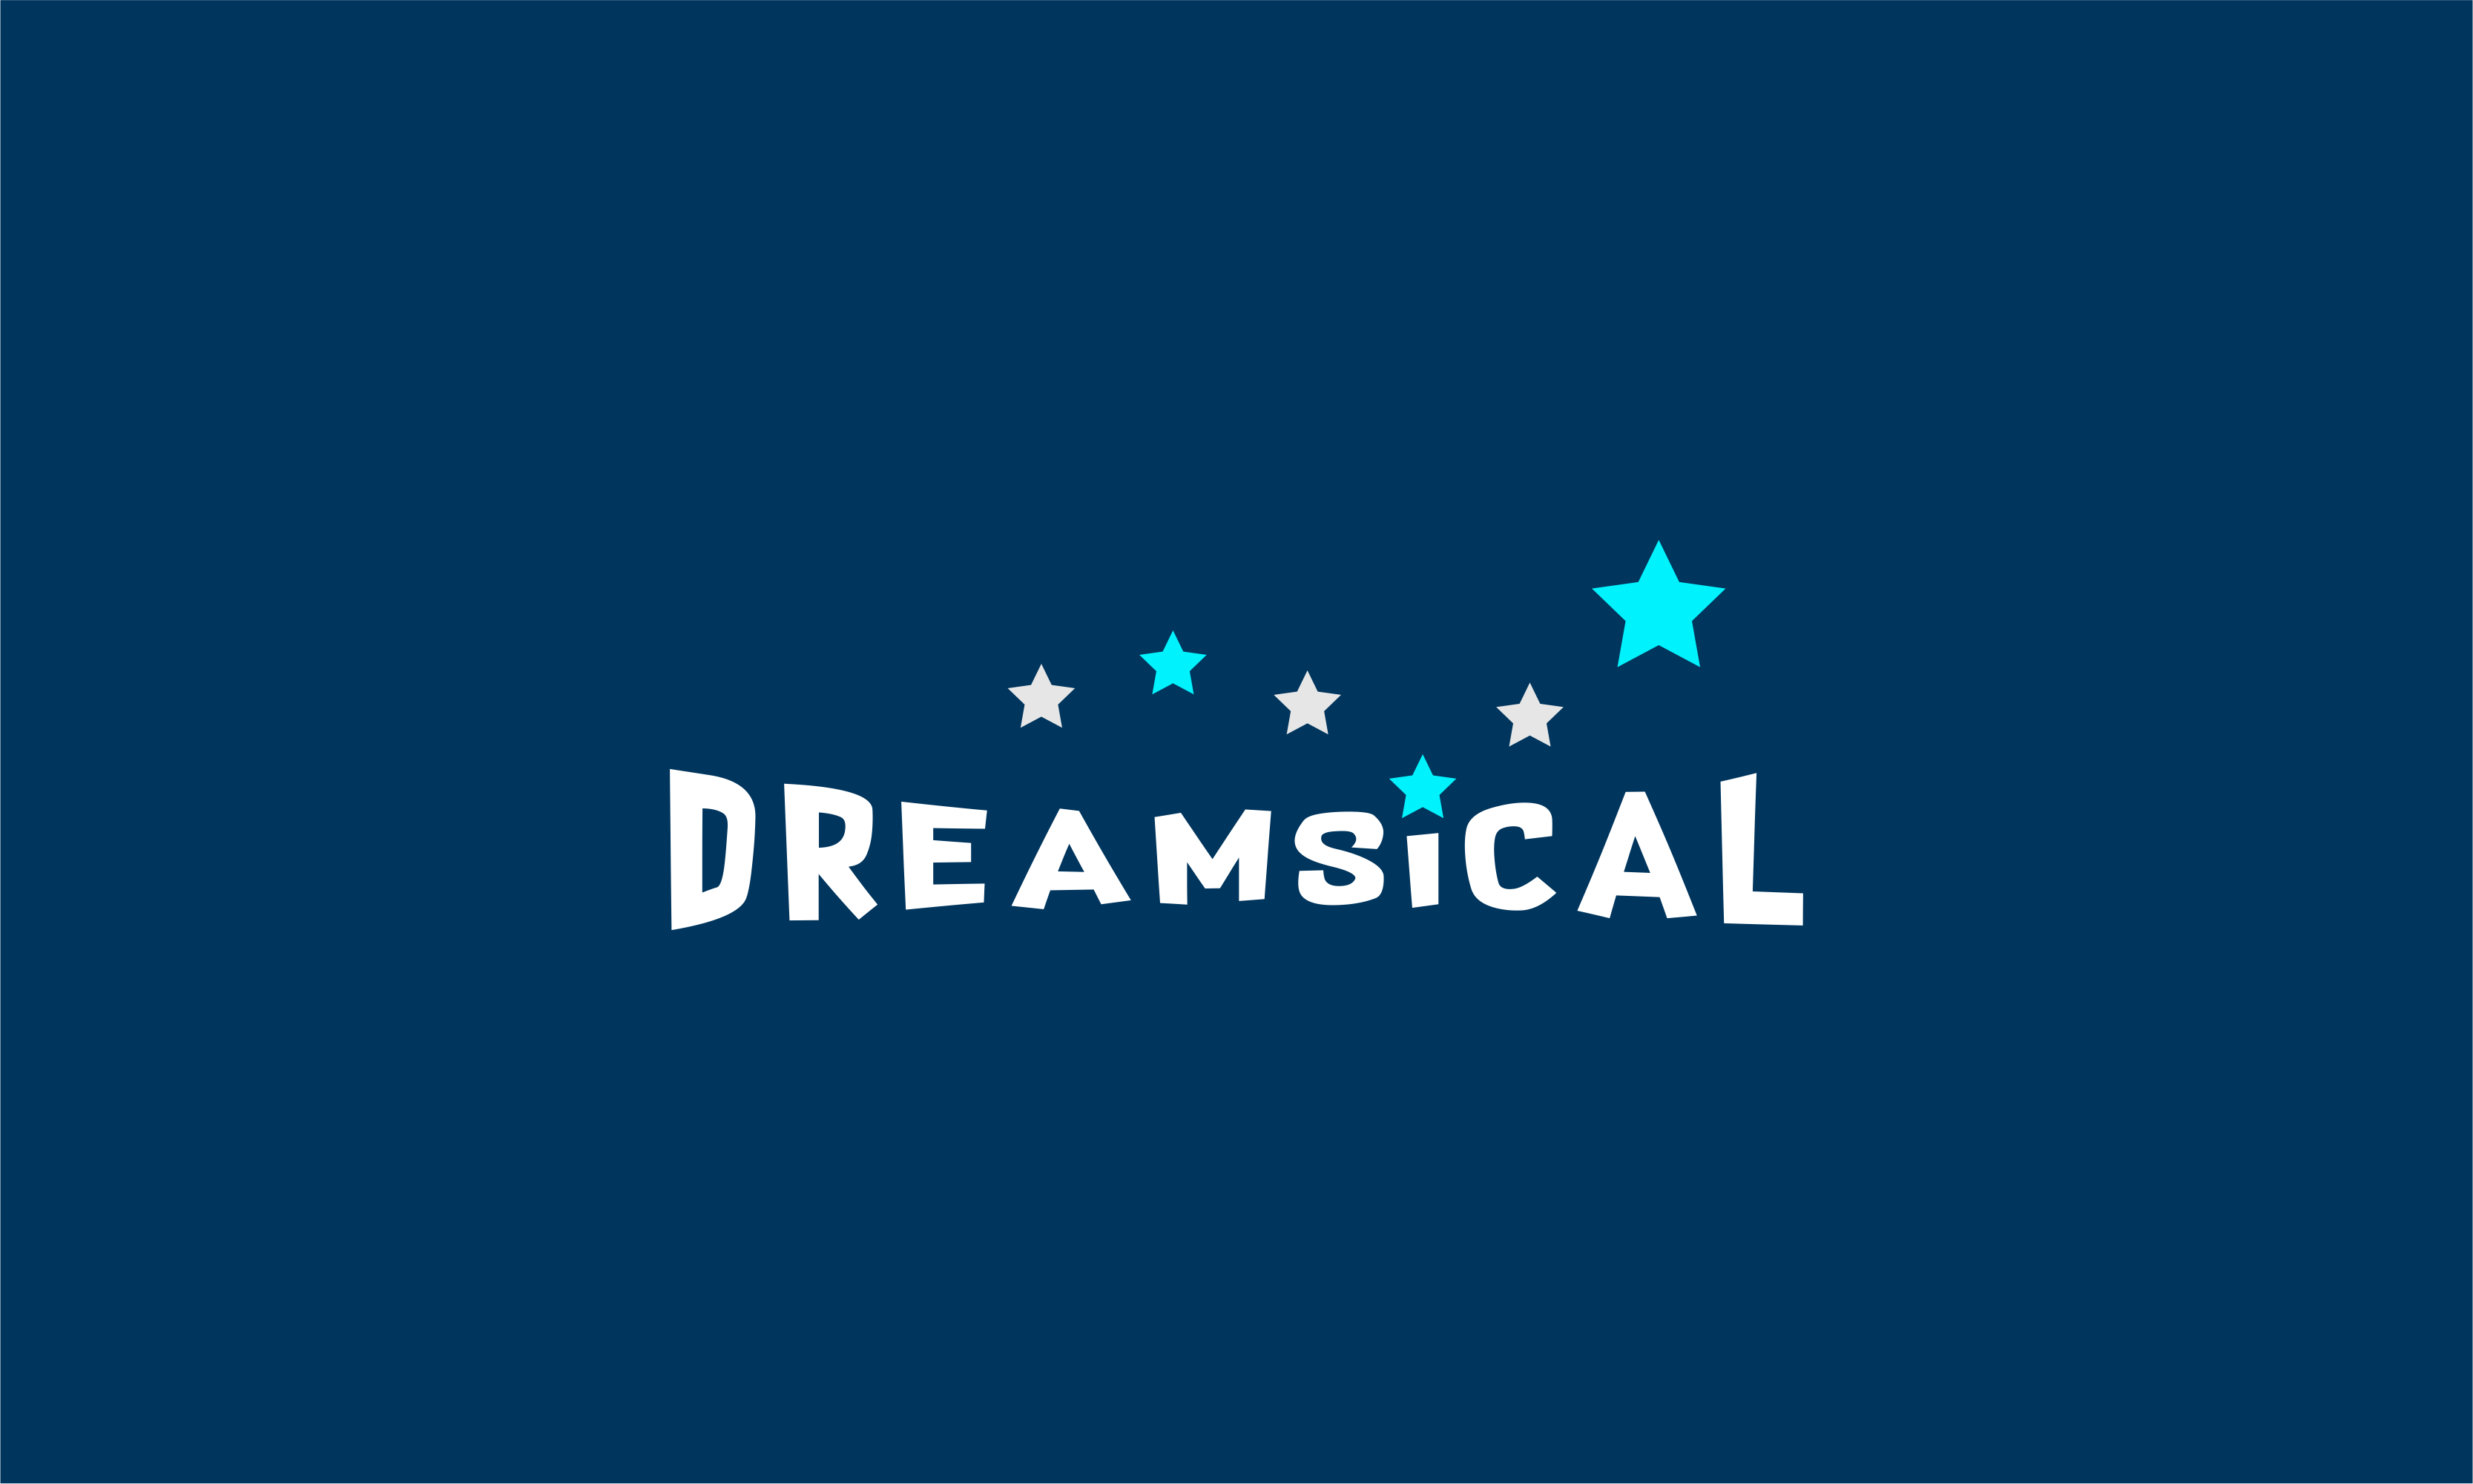 Dreamsical - Possible company name for sale